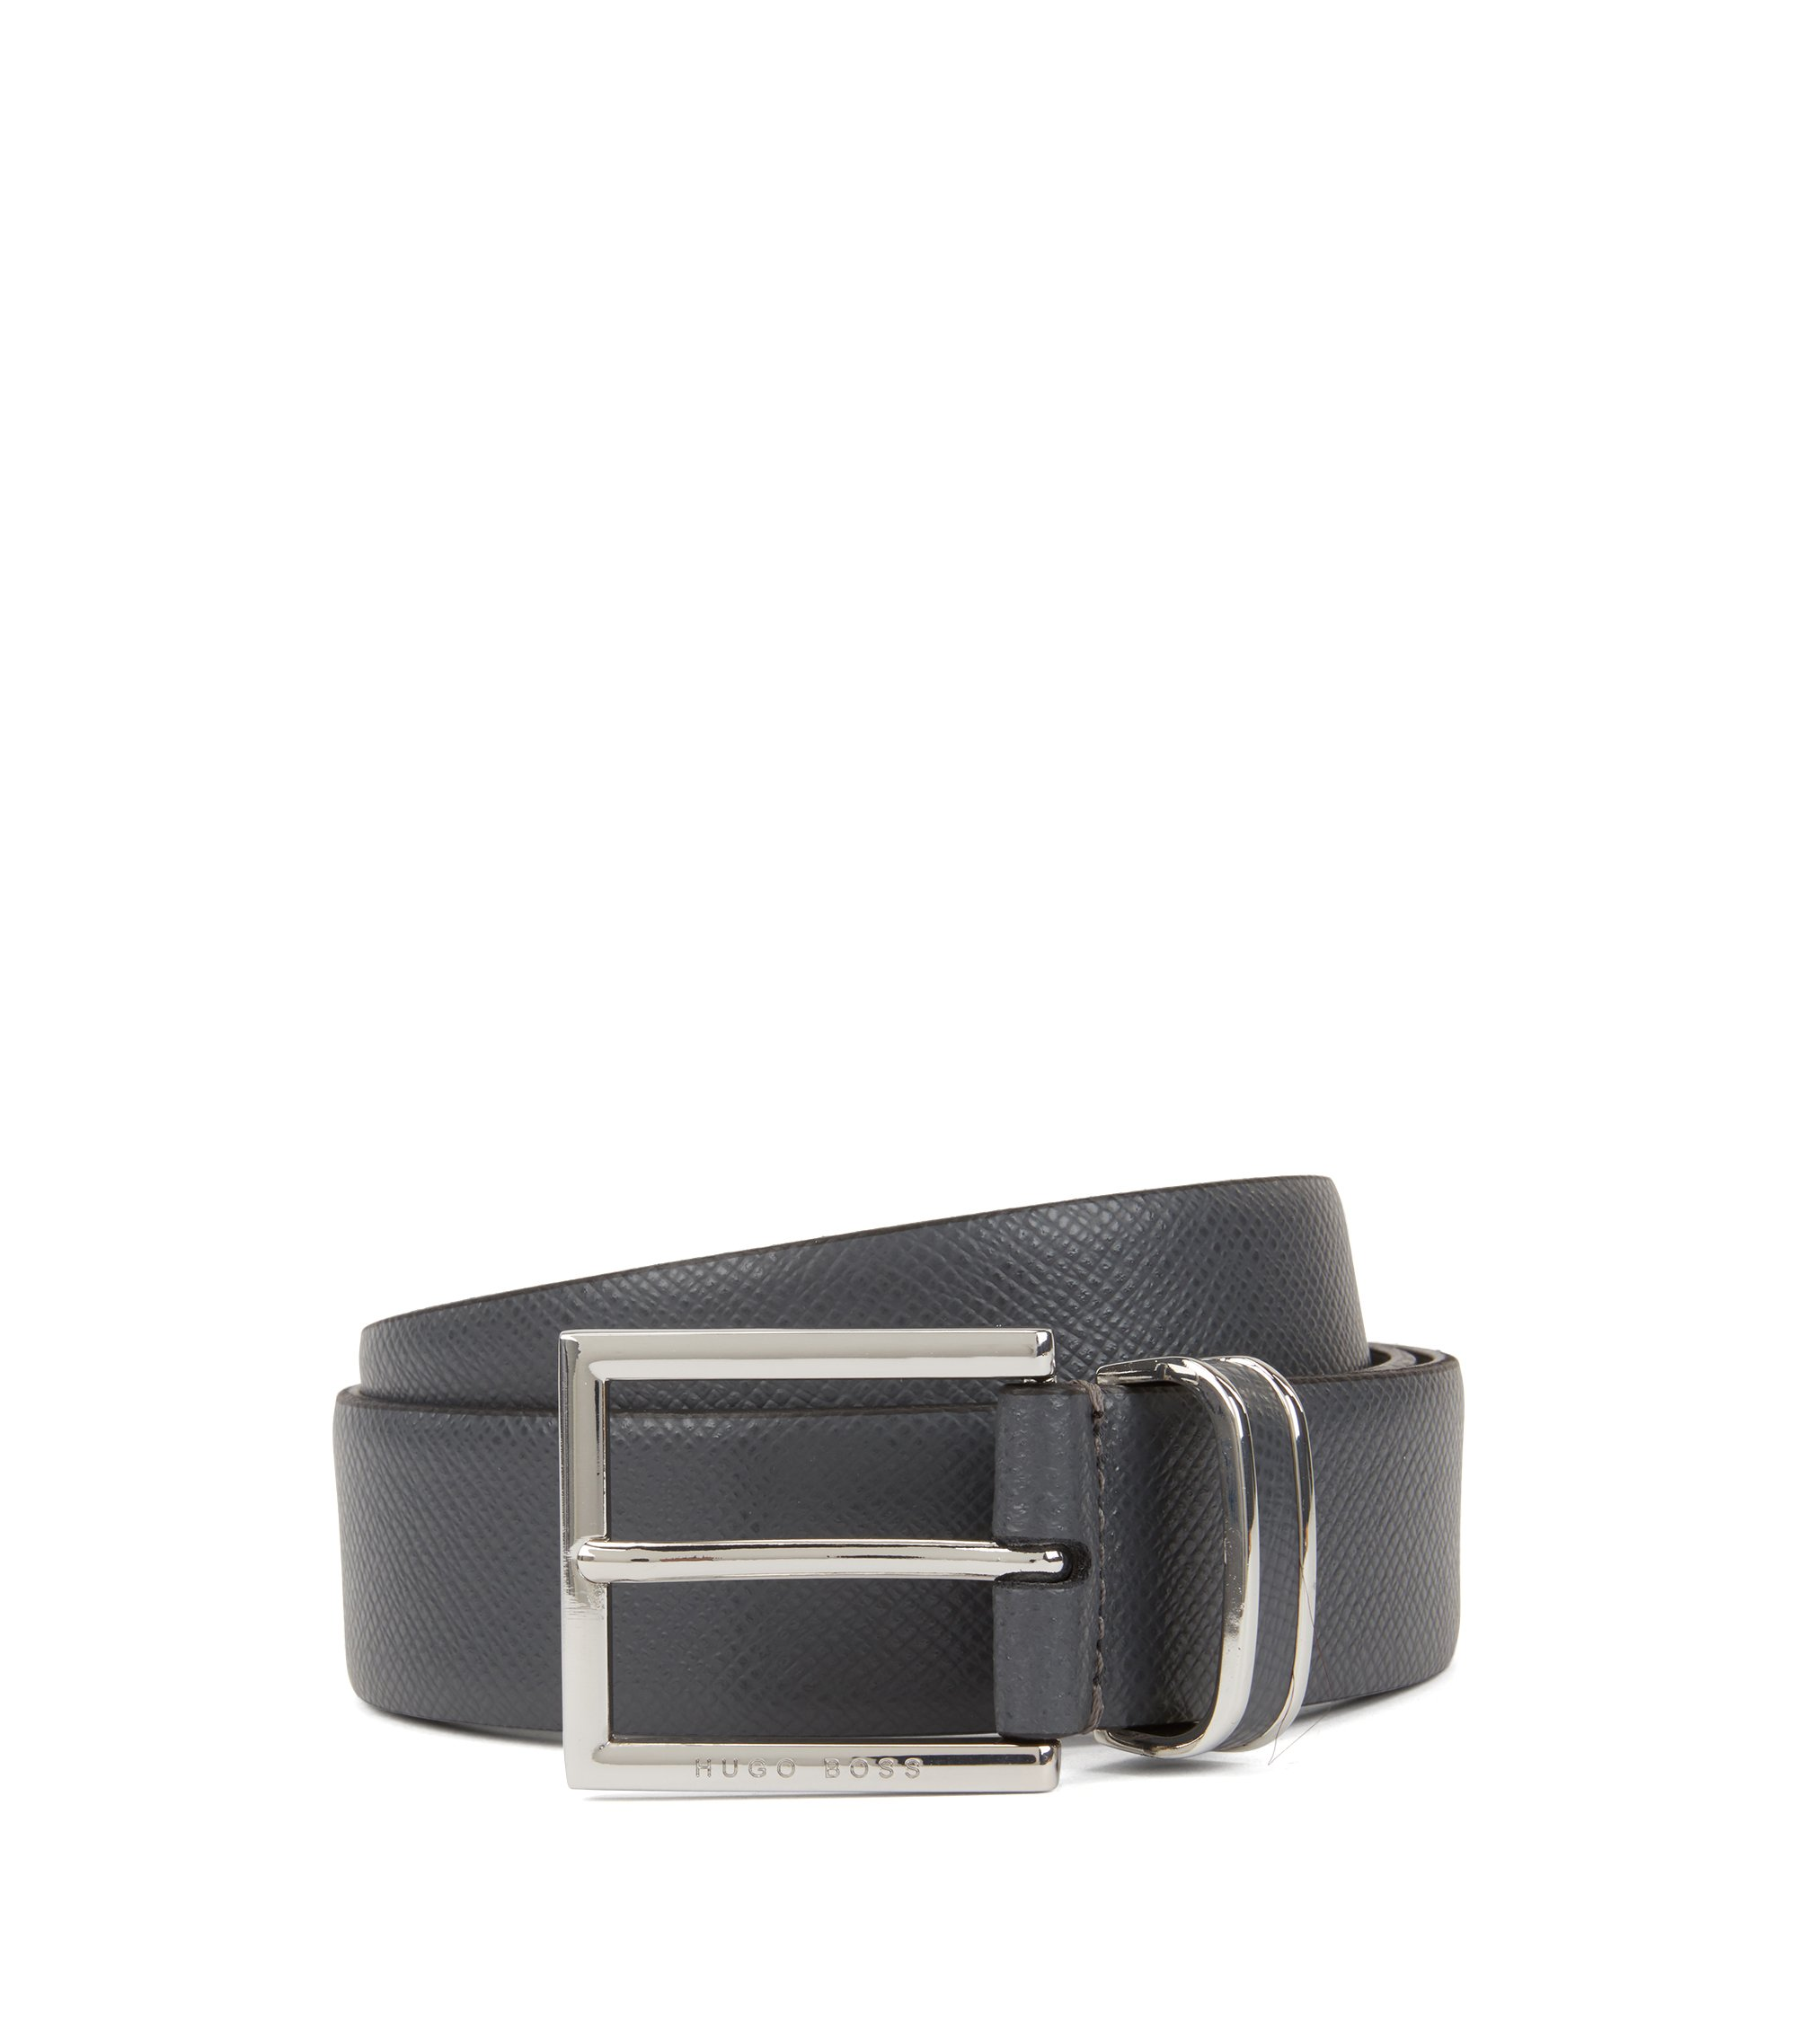 Signature Collection belt in embossed calf leather, Dark Grey